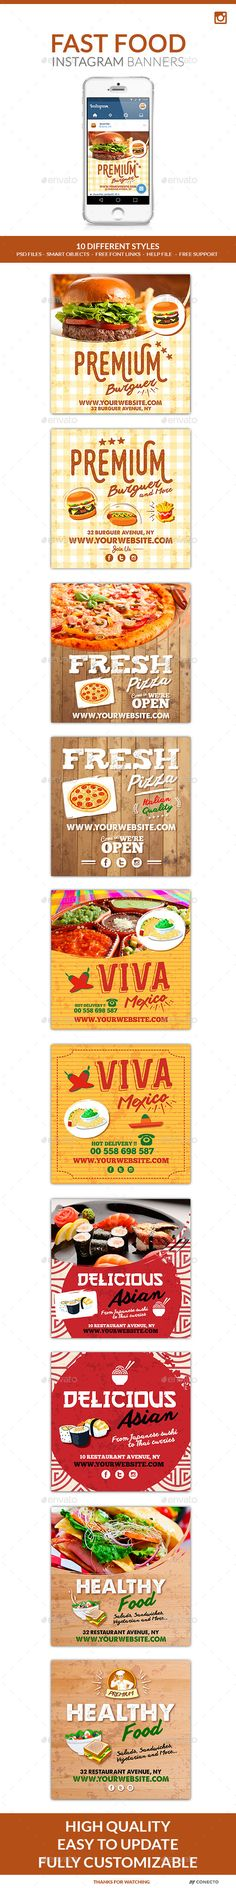 Instagram  Banners  Fast Food — Photoshop PSD #vector #hamburguer • Available here → https://graphicriver.net/item/instagram-banners-fast-food/11829257?ref=pxcr